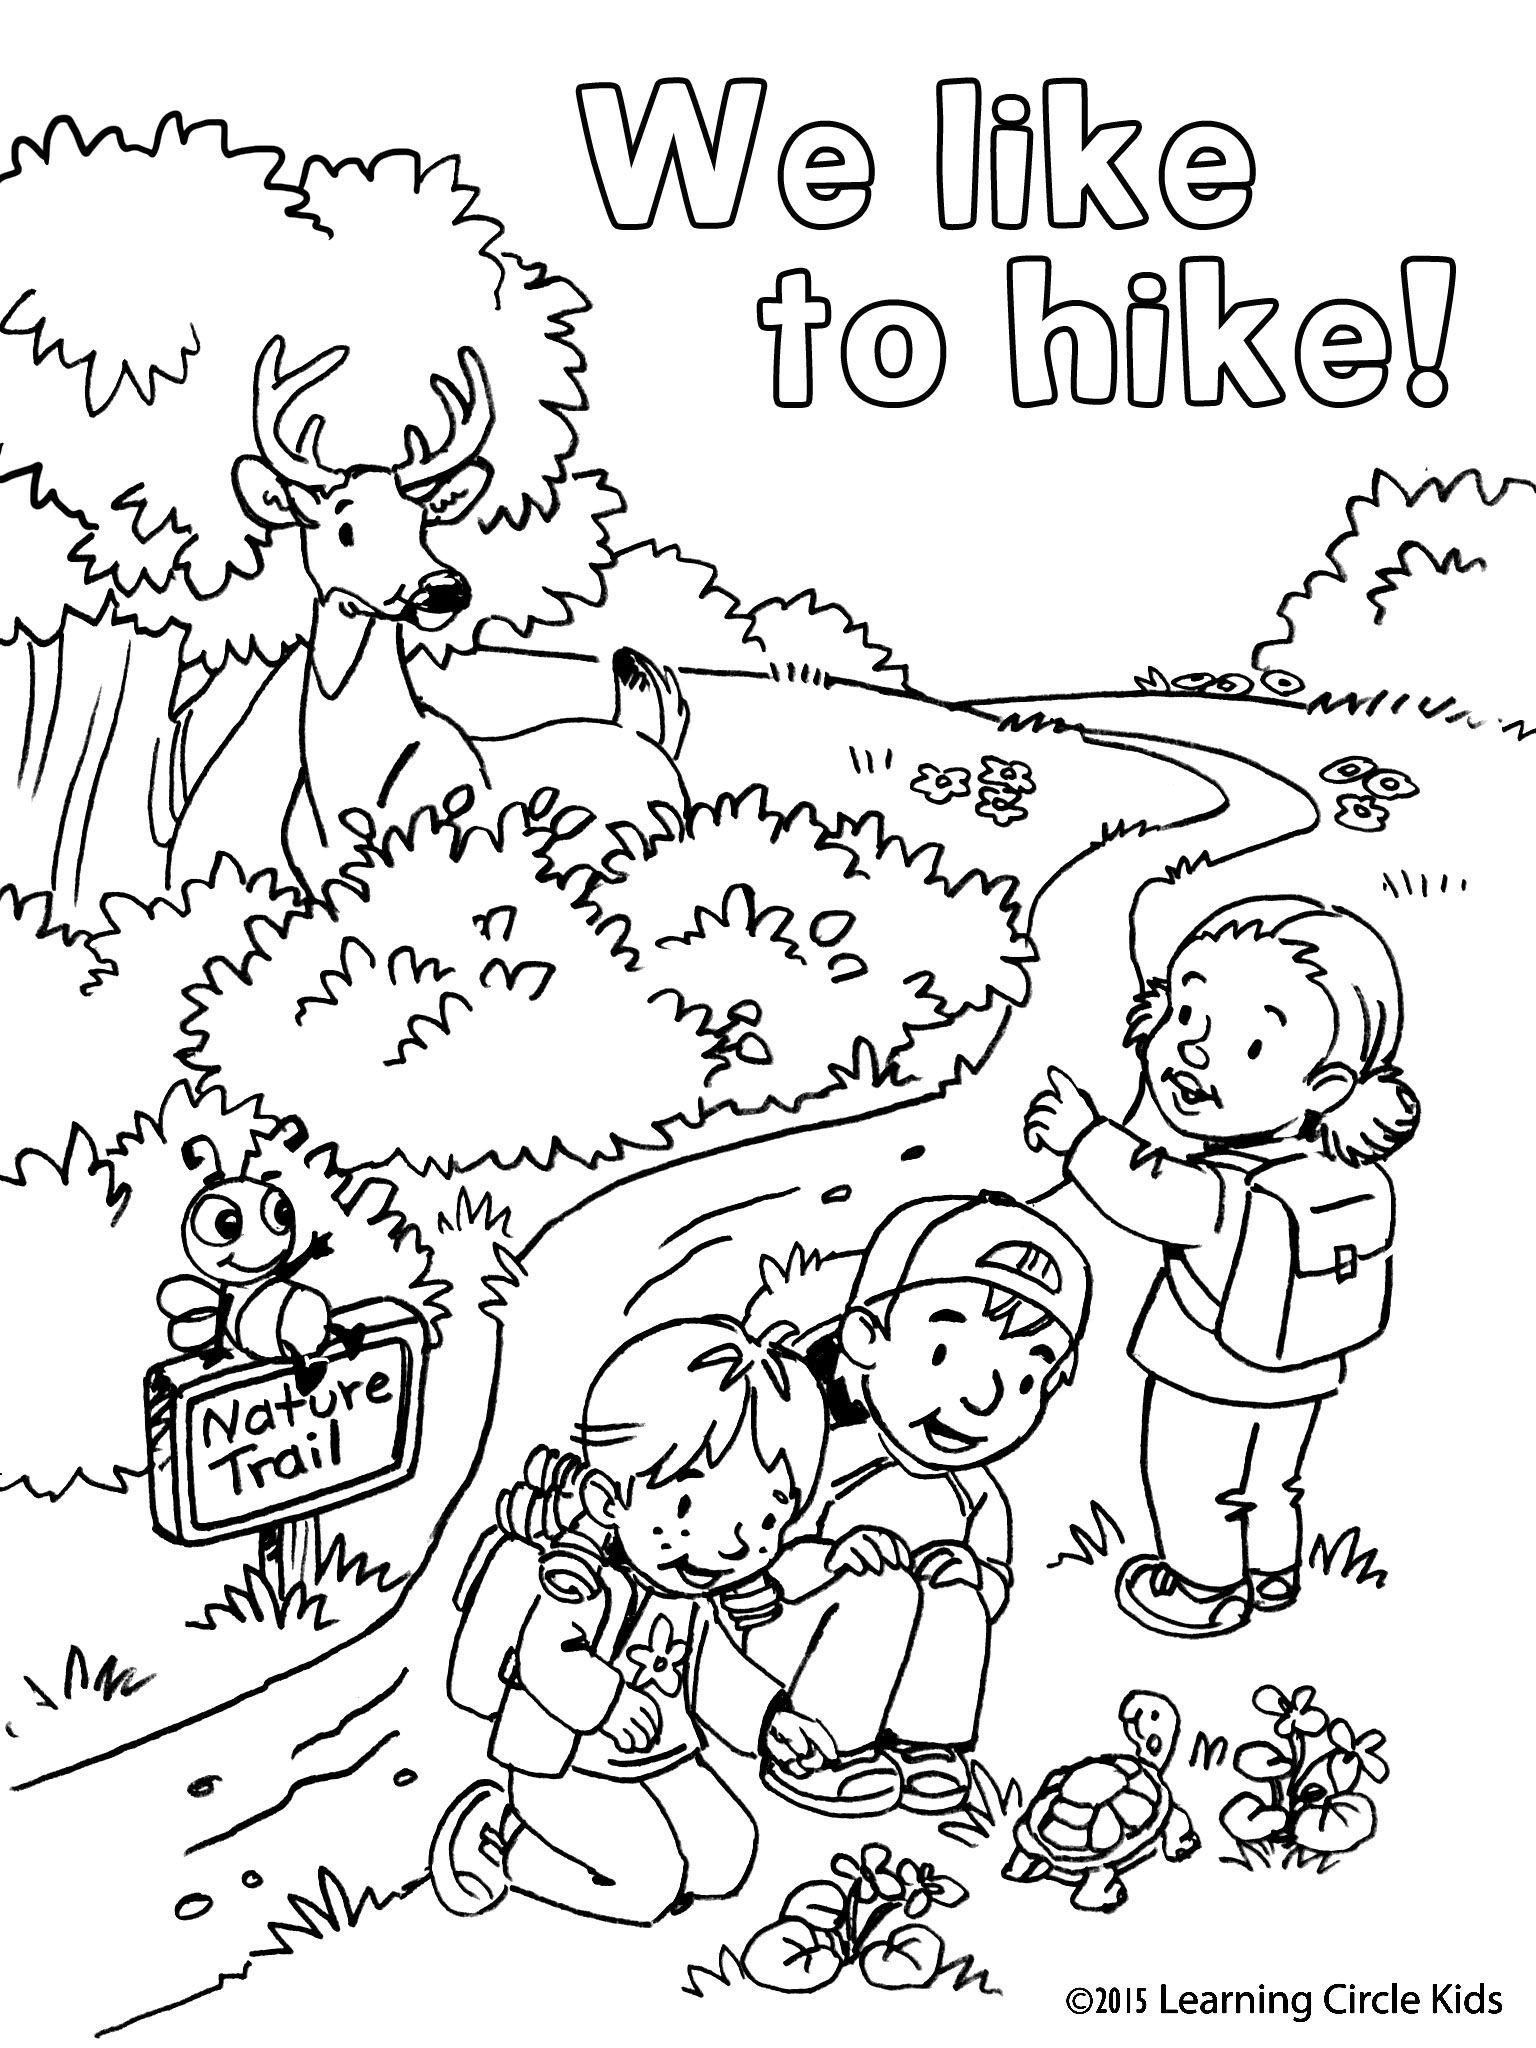 free printable coloring pages for kids camping camping coloring pages kids free coloring printable pages for camping